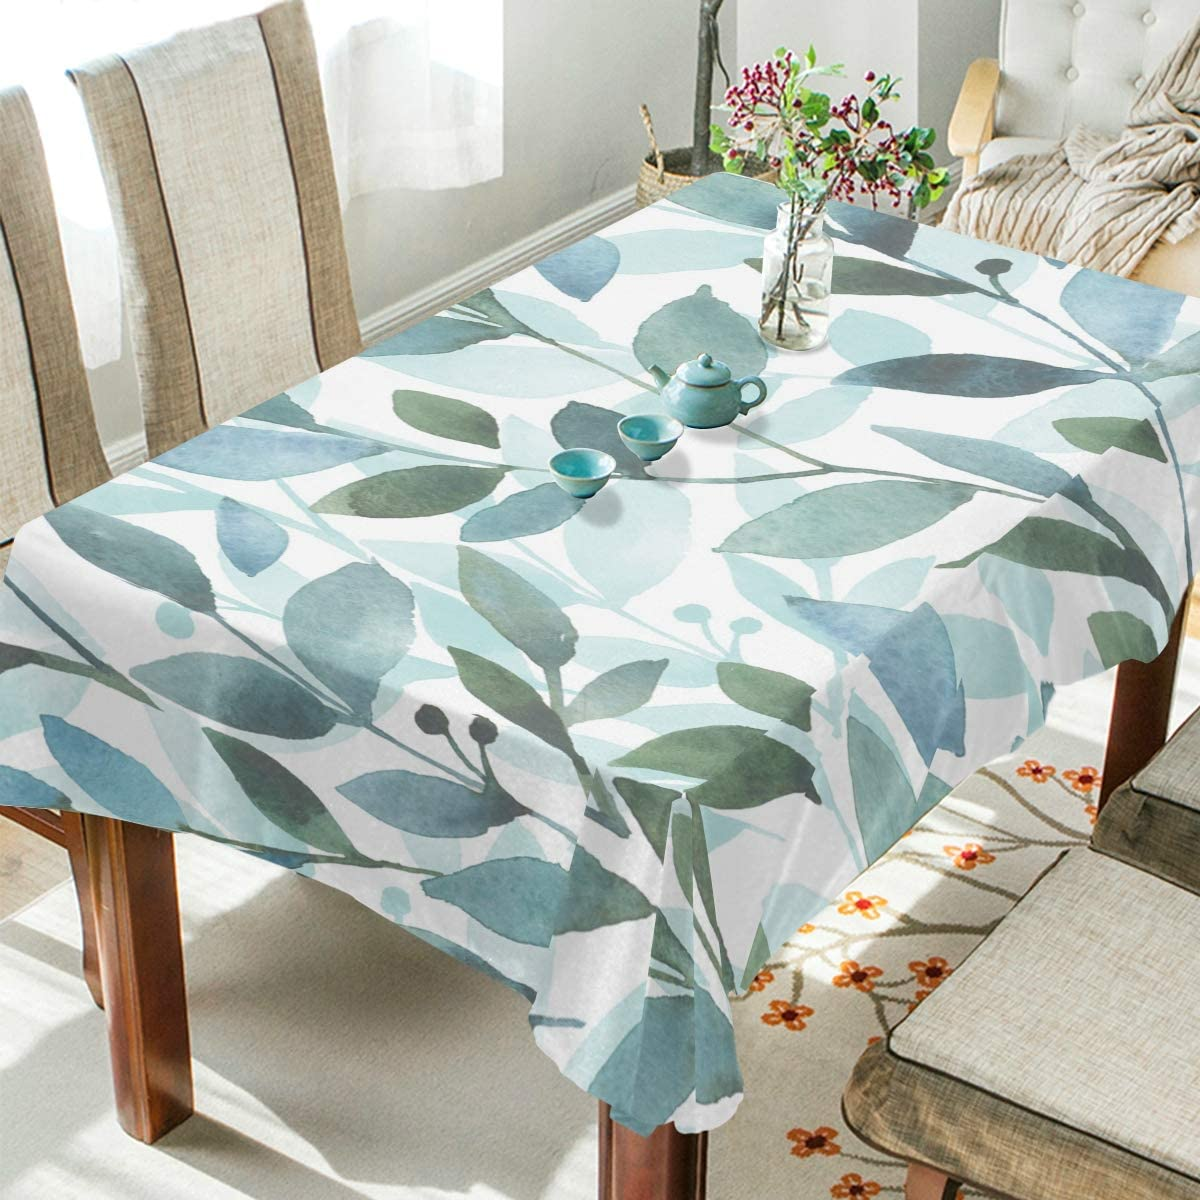 ALAZA Rectangle Tablecloth Watercolor Elegant Leaves Washable Spill Proof Table Cloth Dust-Proof Table Cover for Kitchen Dining Room Party Tablecovers Spread Home Decoration 60 x 90 Inches